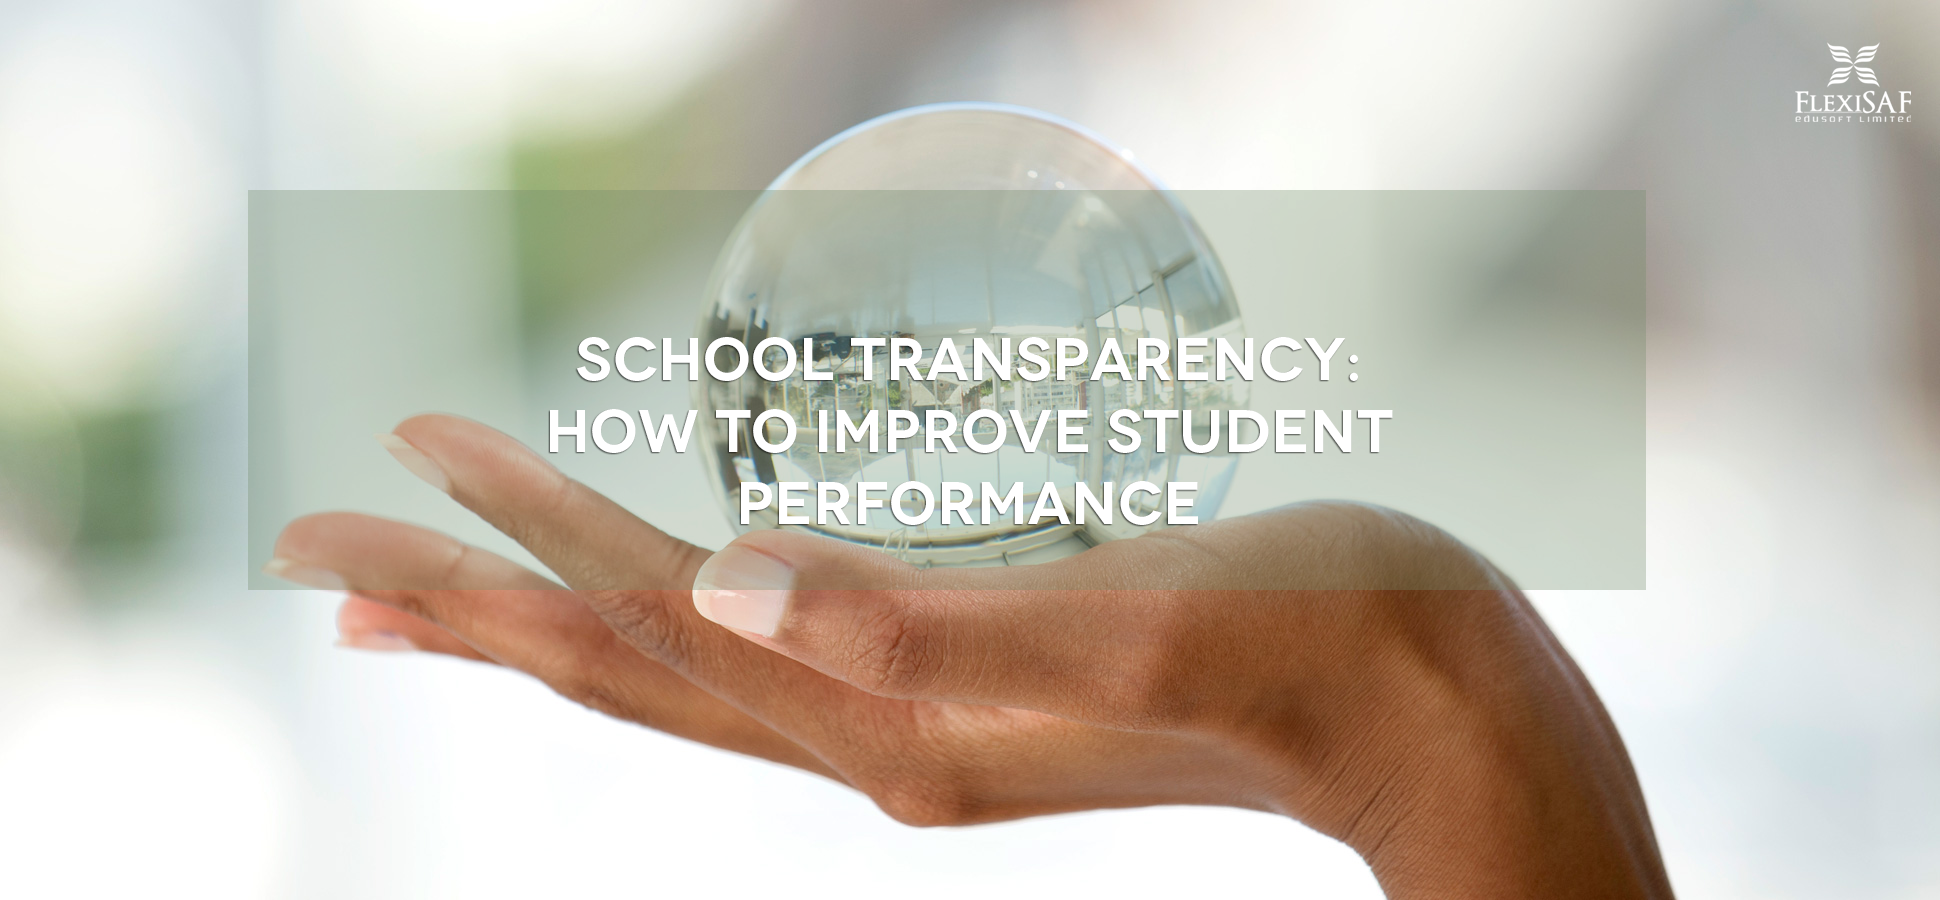 School Transparency: How to Improve Student Performance